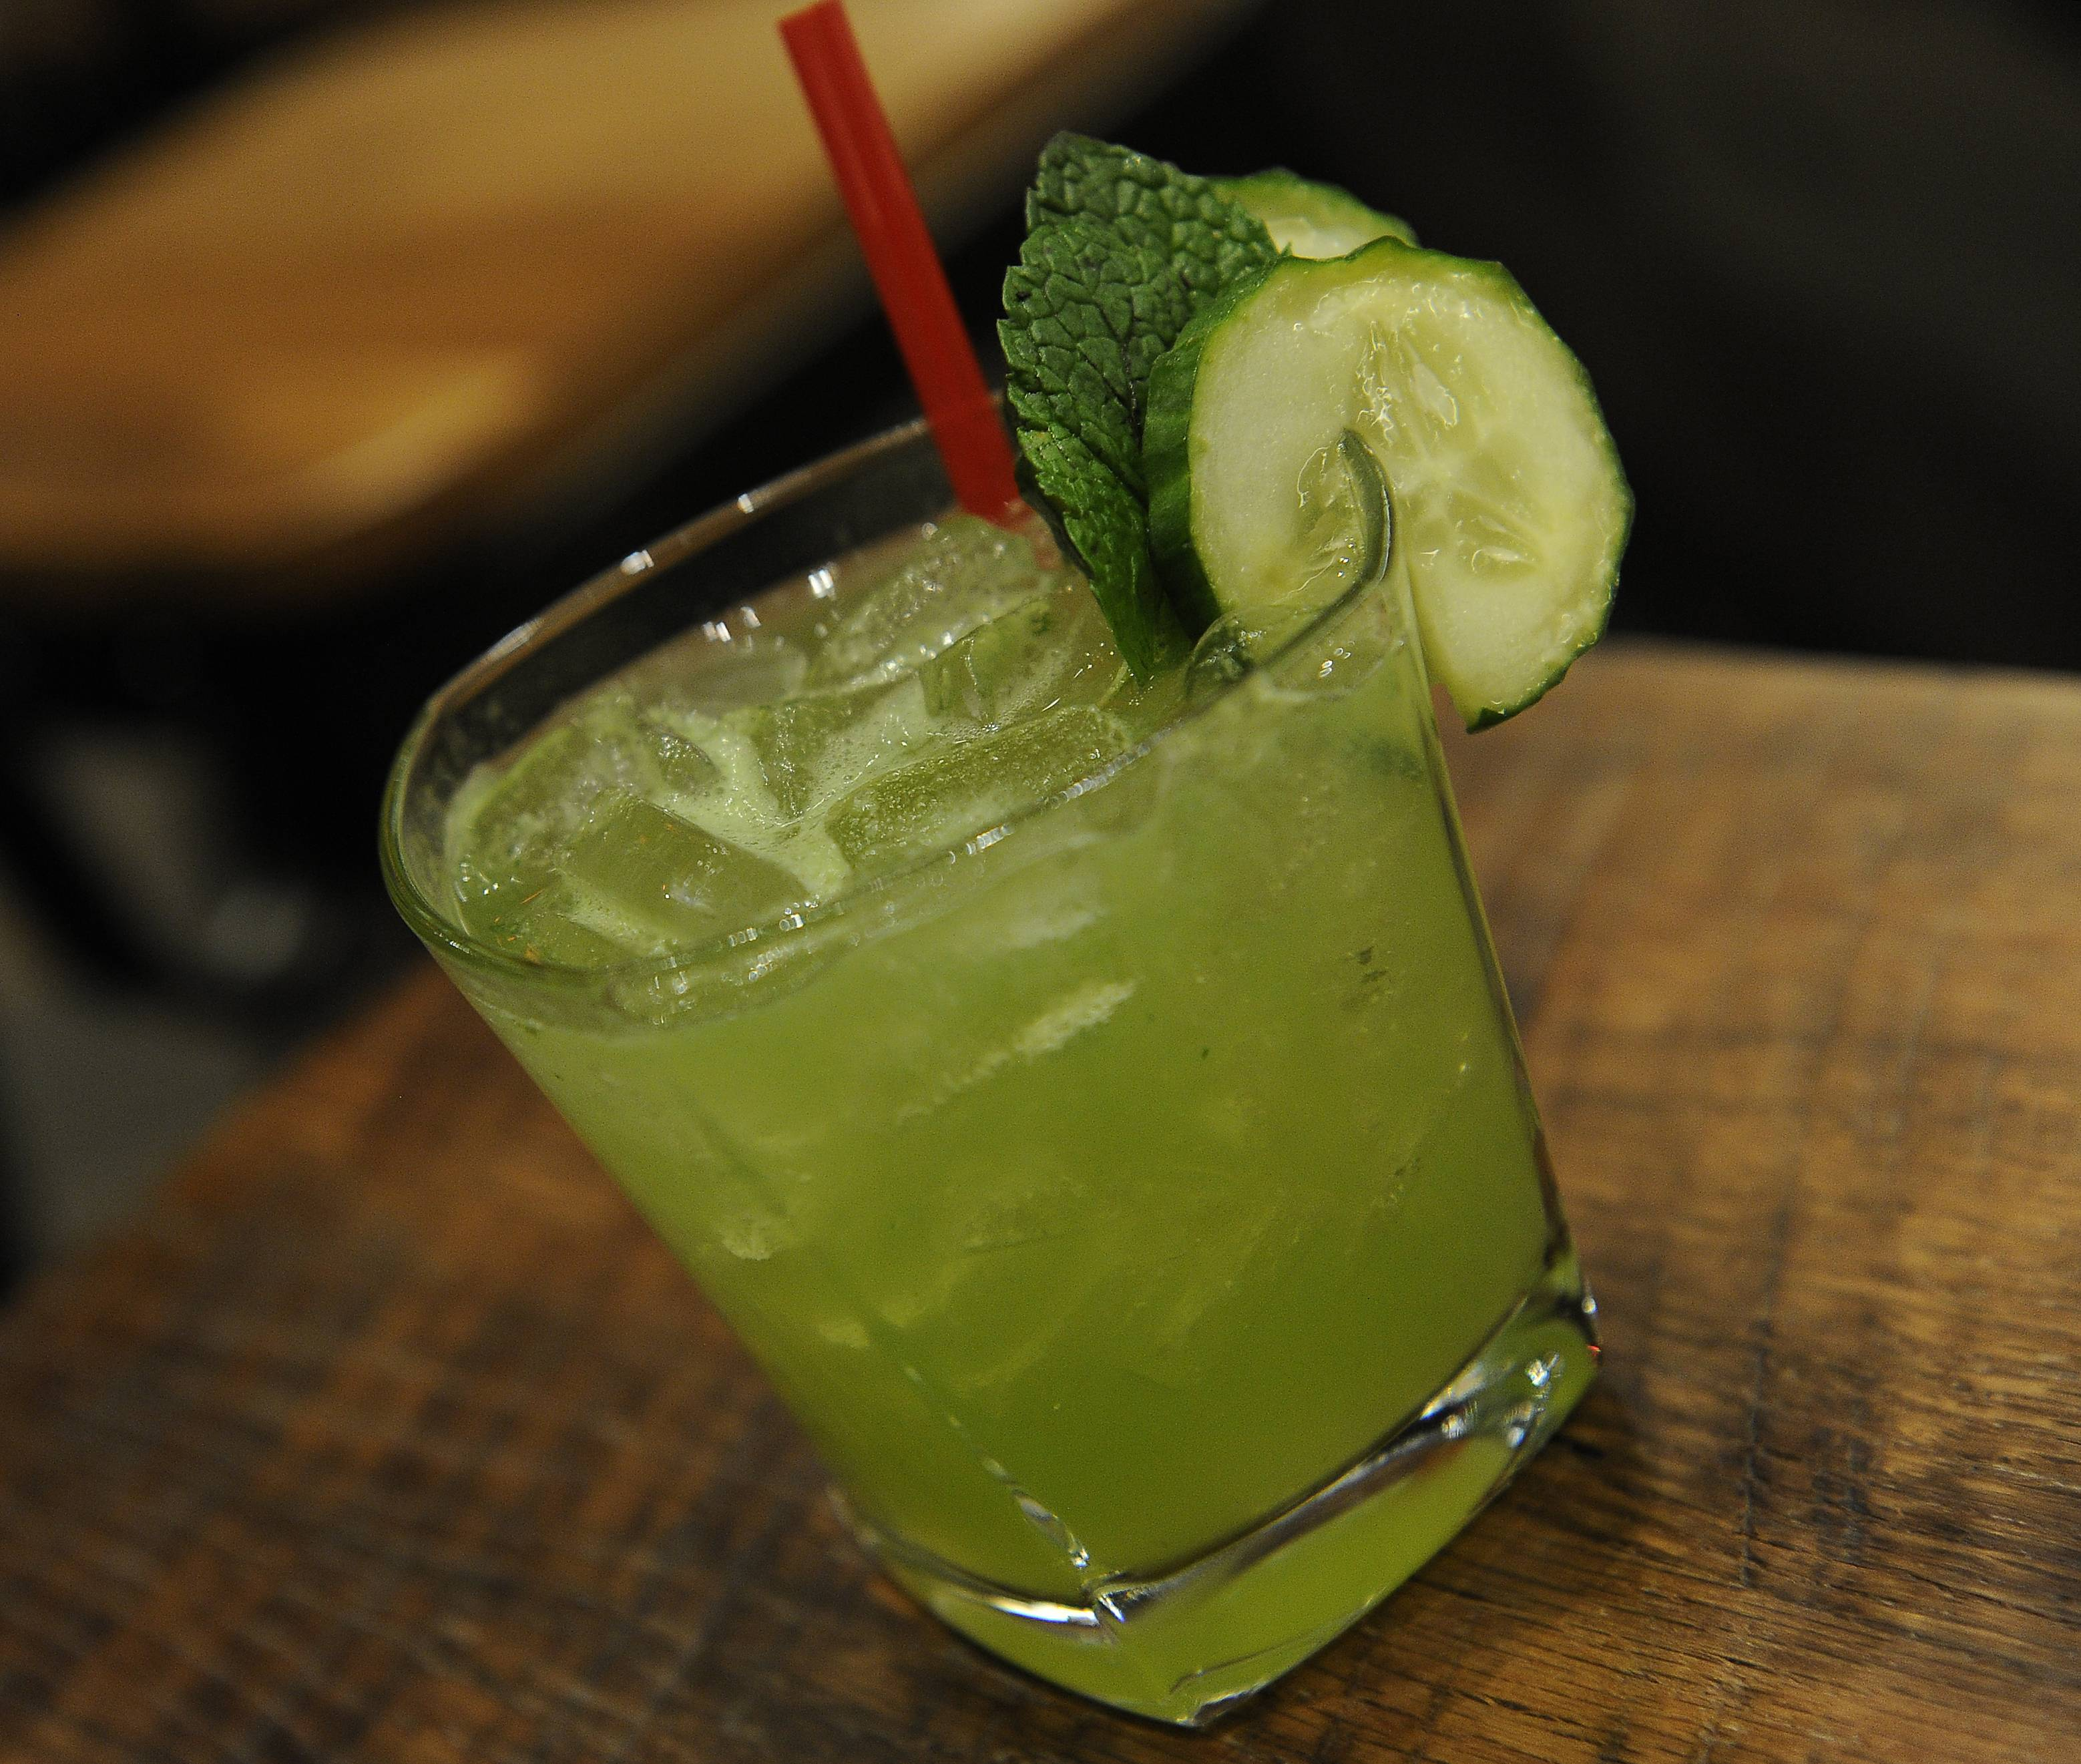 Barnwood's Green Garden combines Aviation gin, midori, fresh cucumber juice, lemon juice and mint.